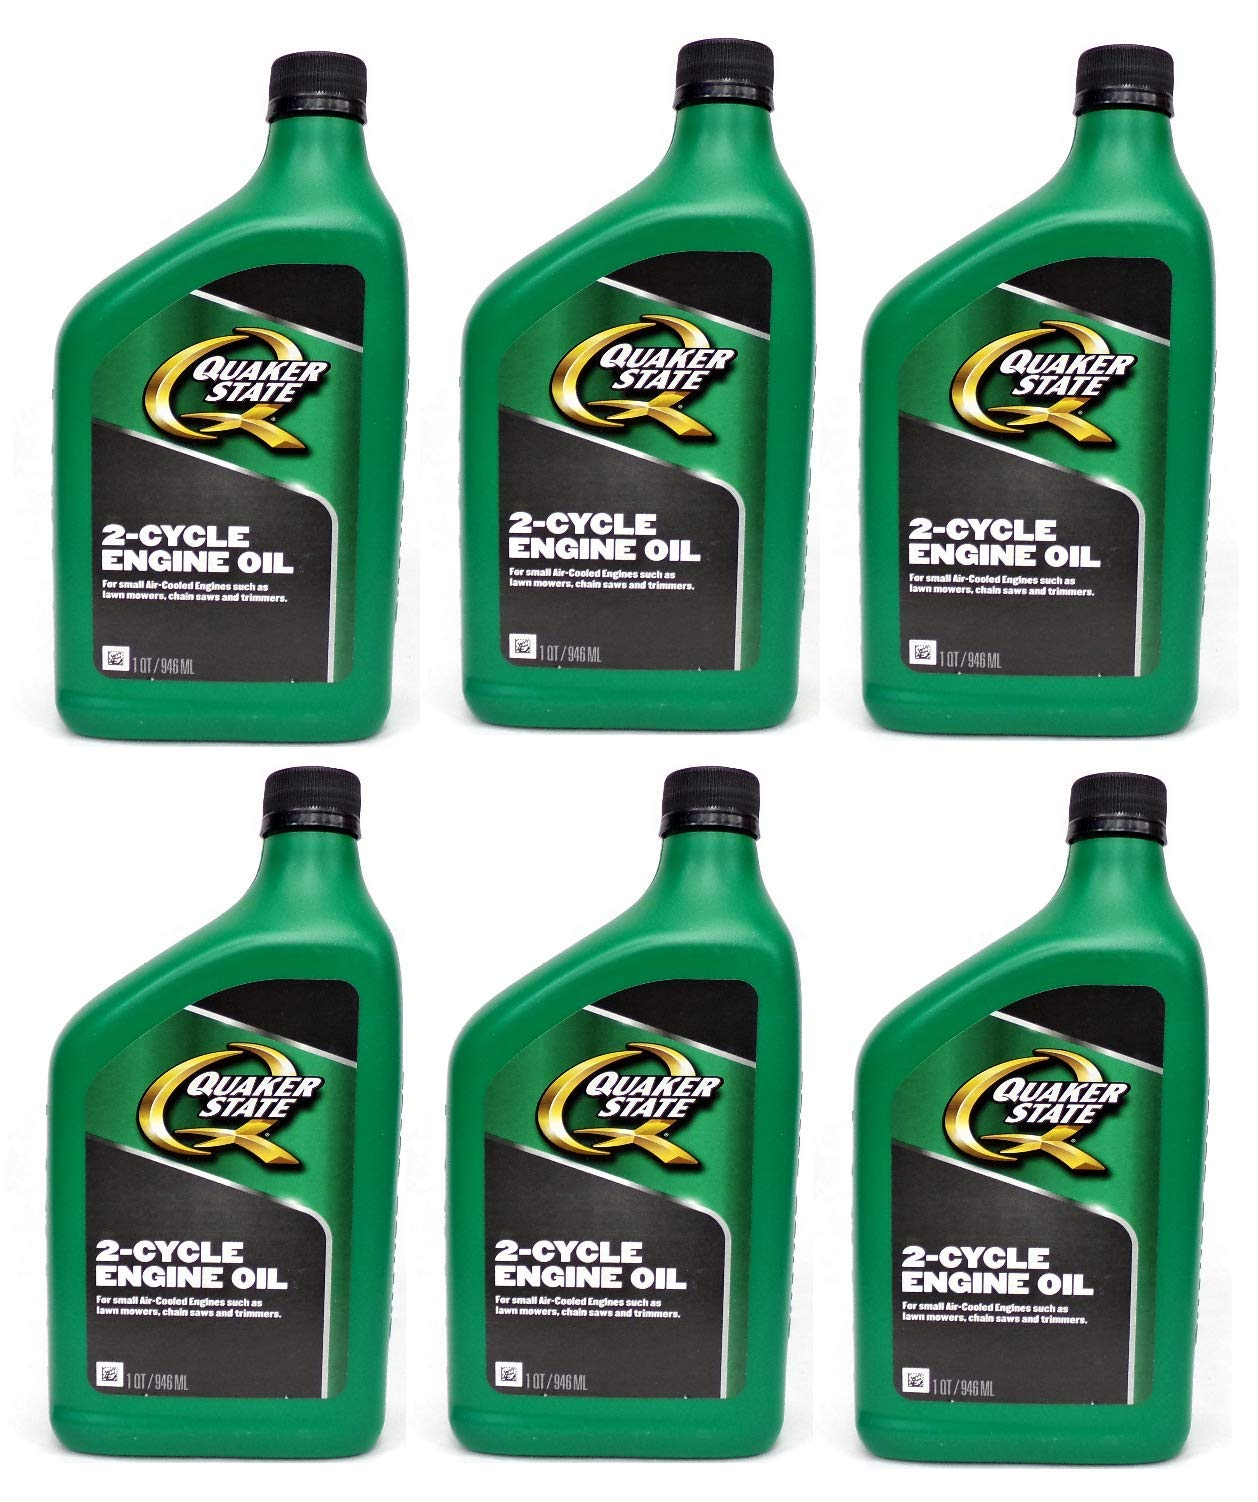 Quaker State Pennzoil 2- Cycle, 2- Stroke Engine Oil for Small Air Cooled Engines, 6 Quarts